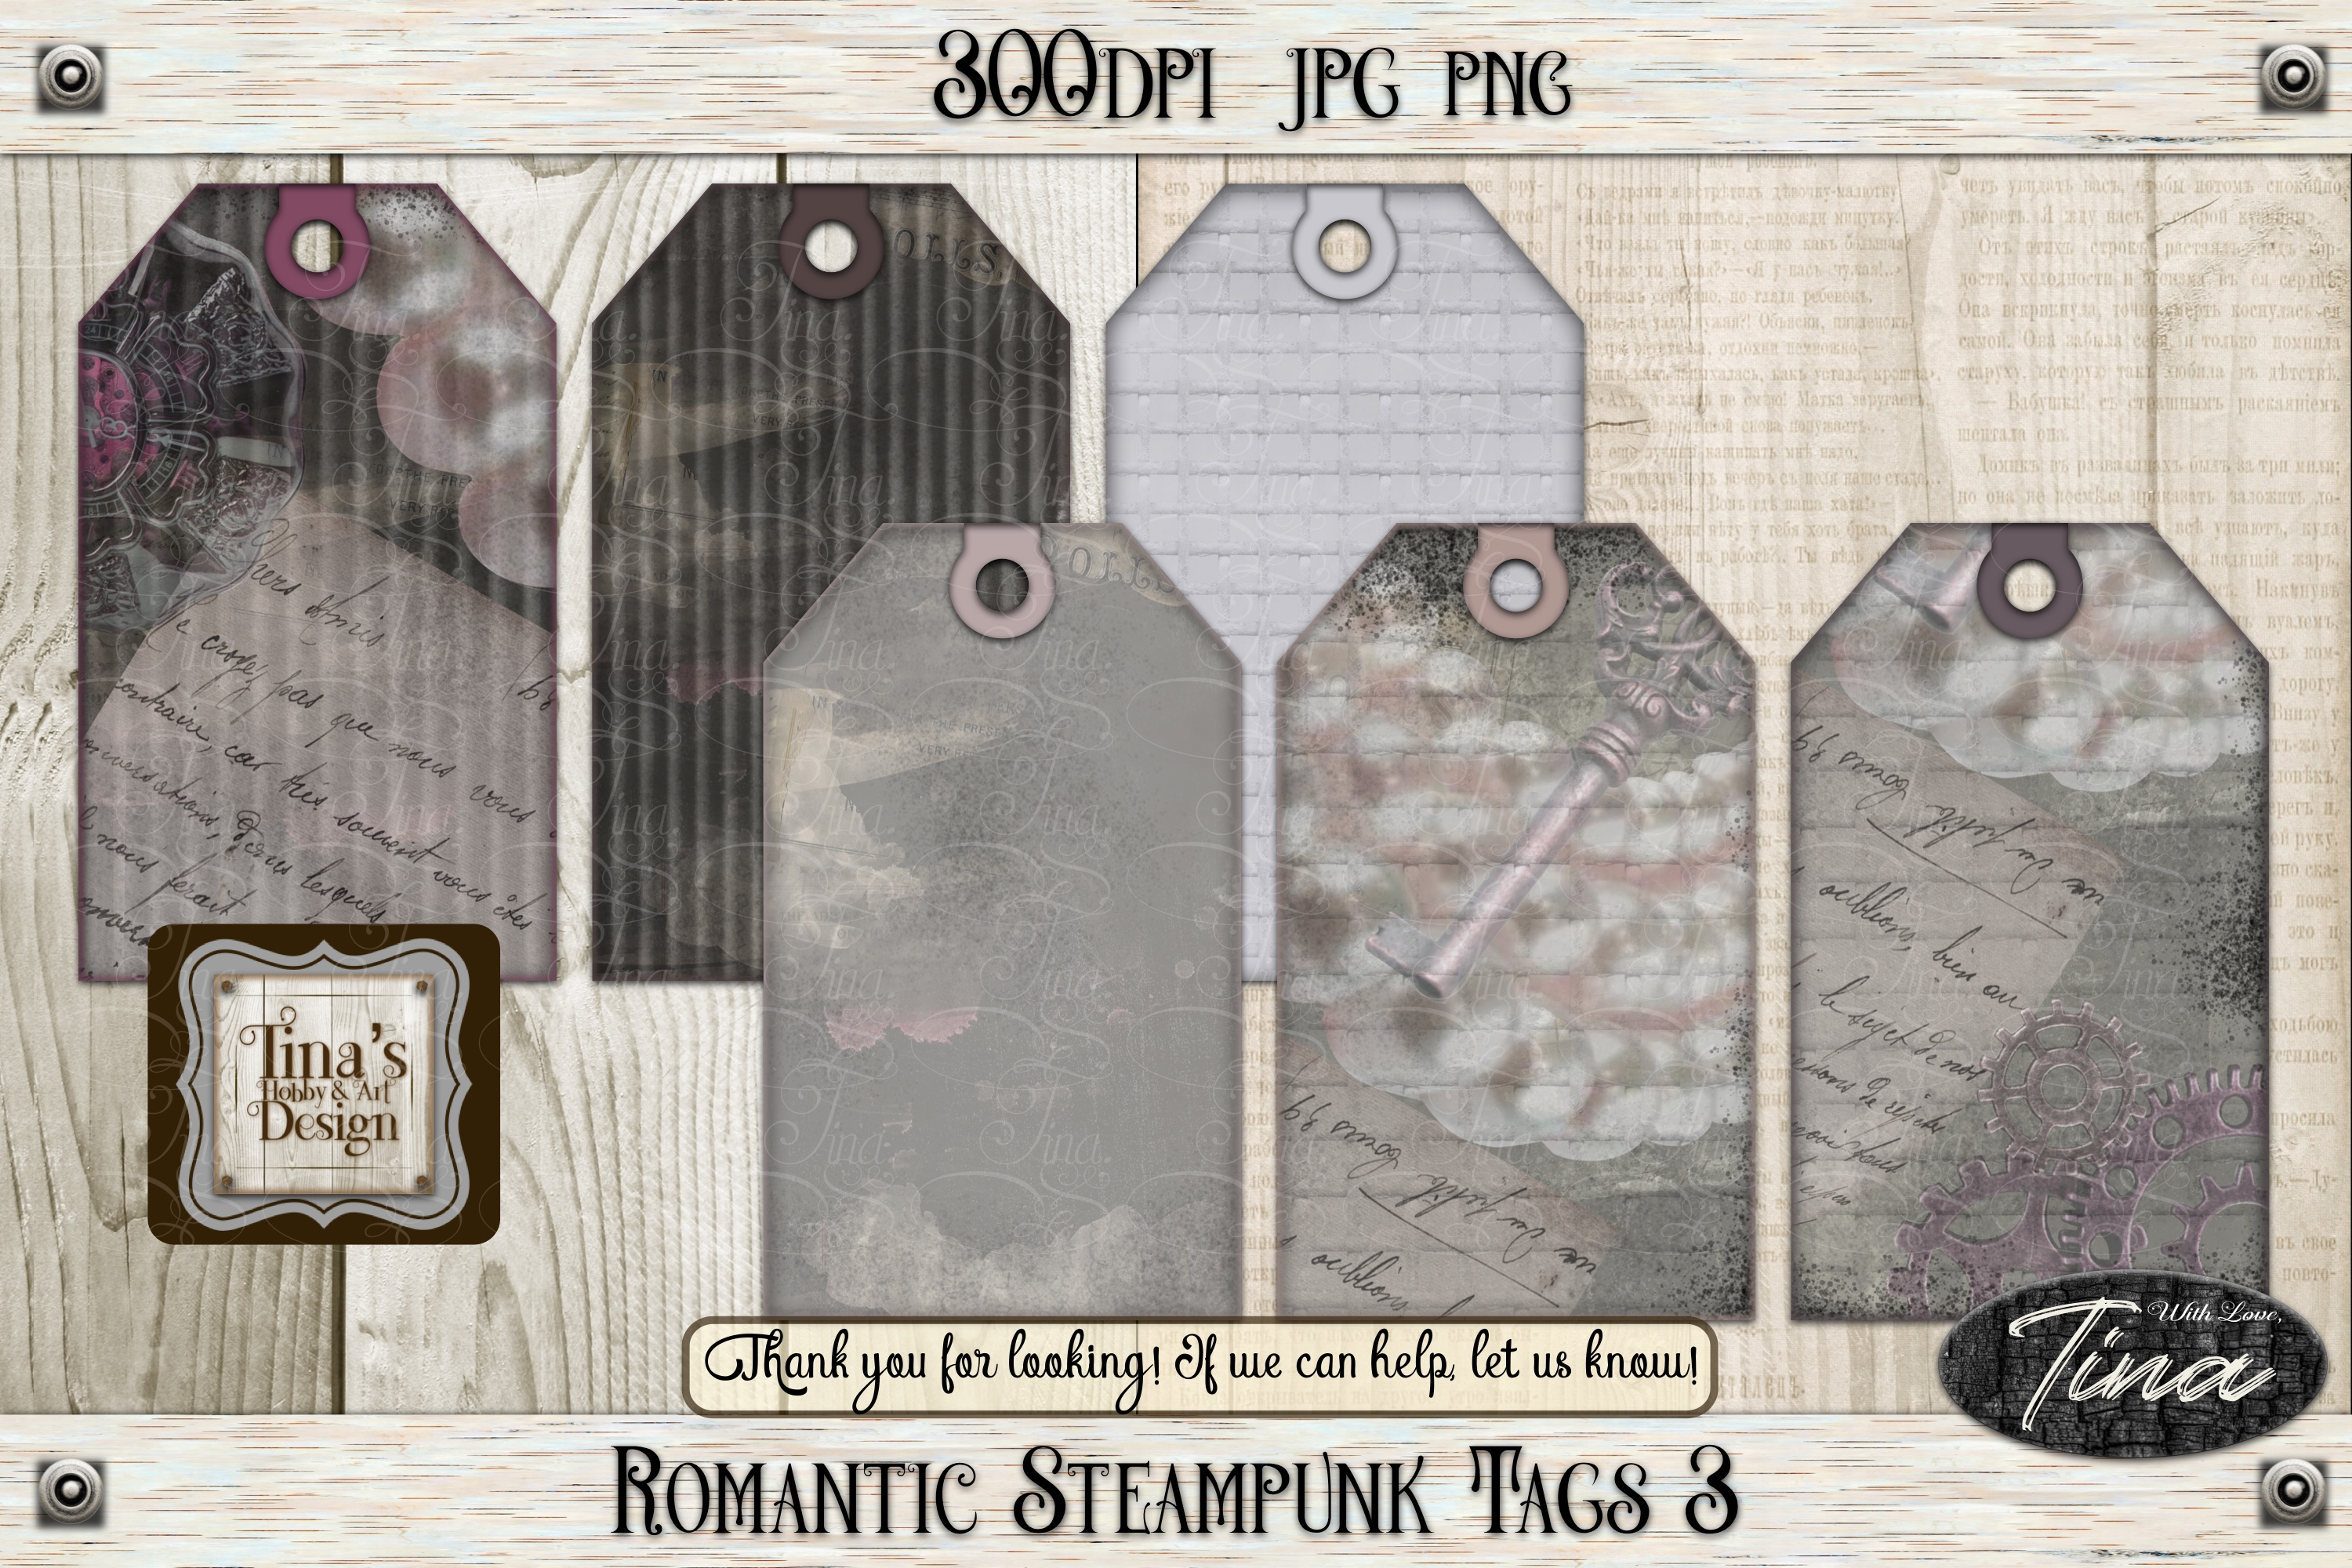 Romantic Steampunk Tags 4 Collage Mauve Grunge 101918RST4 example image 8